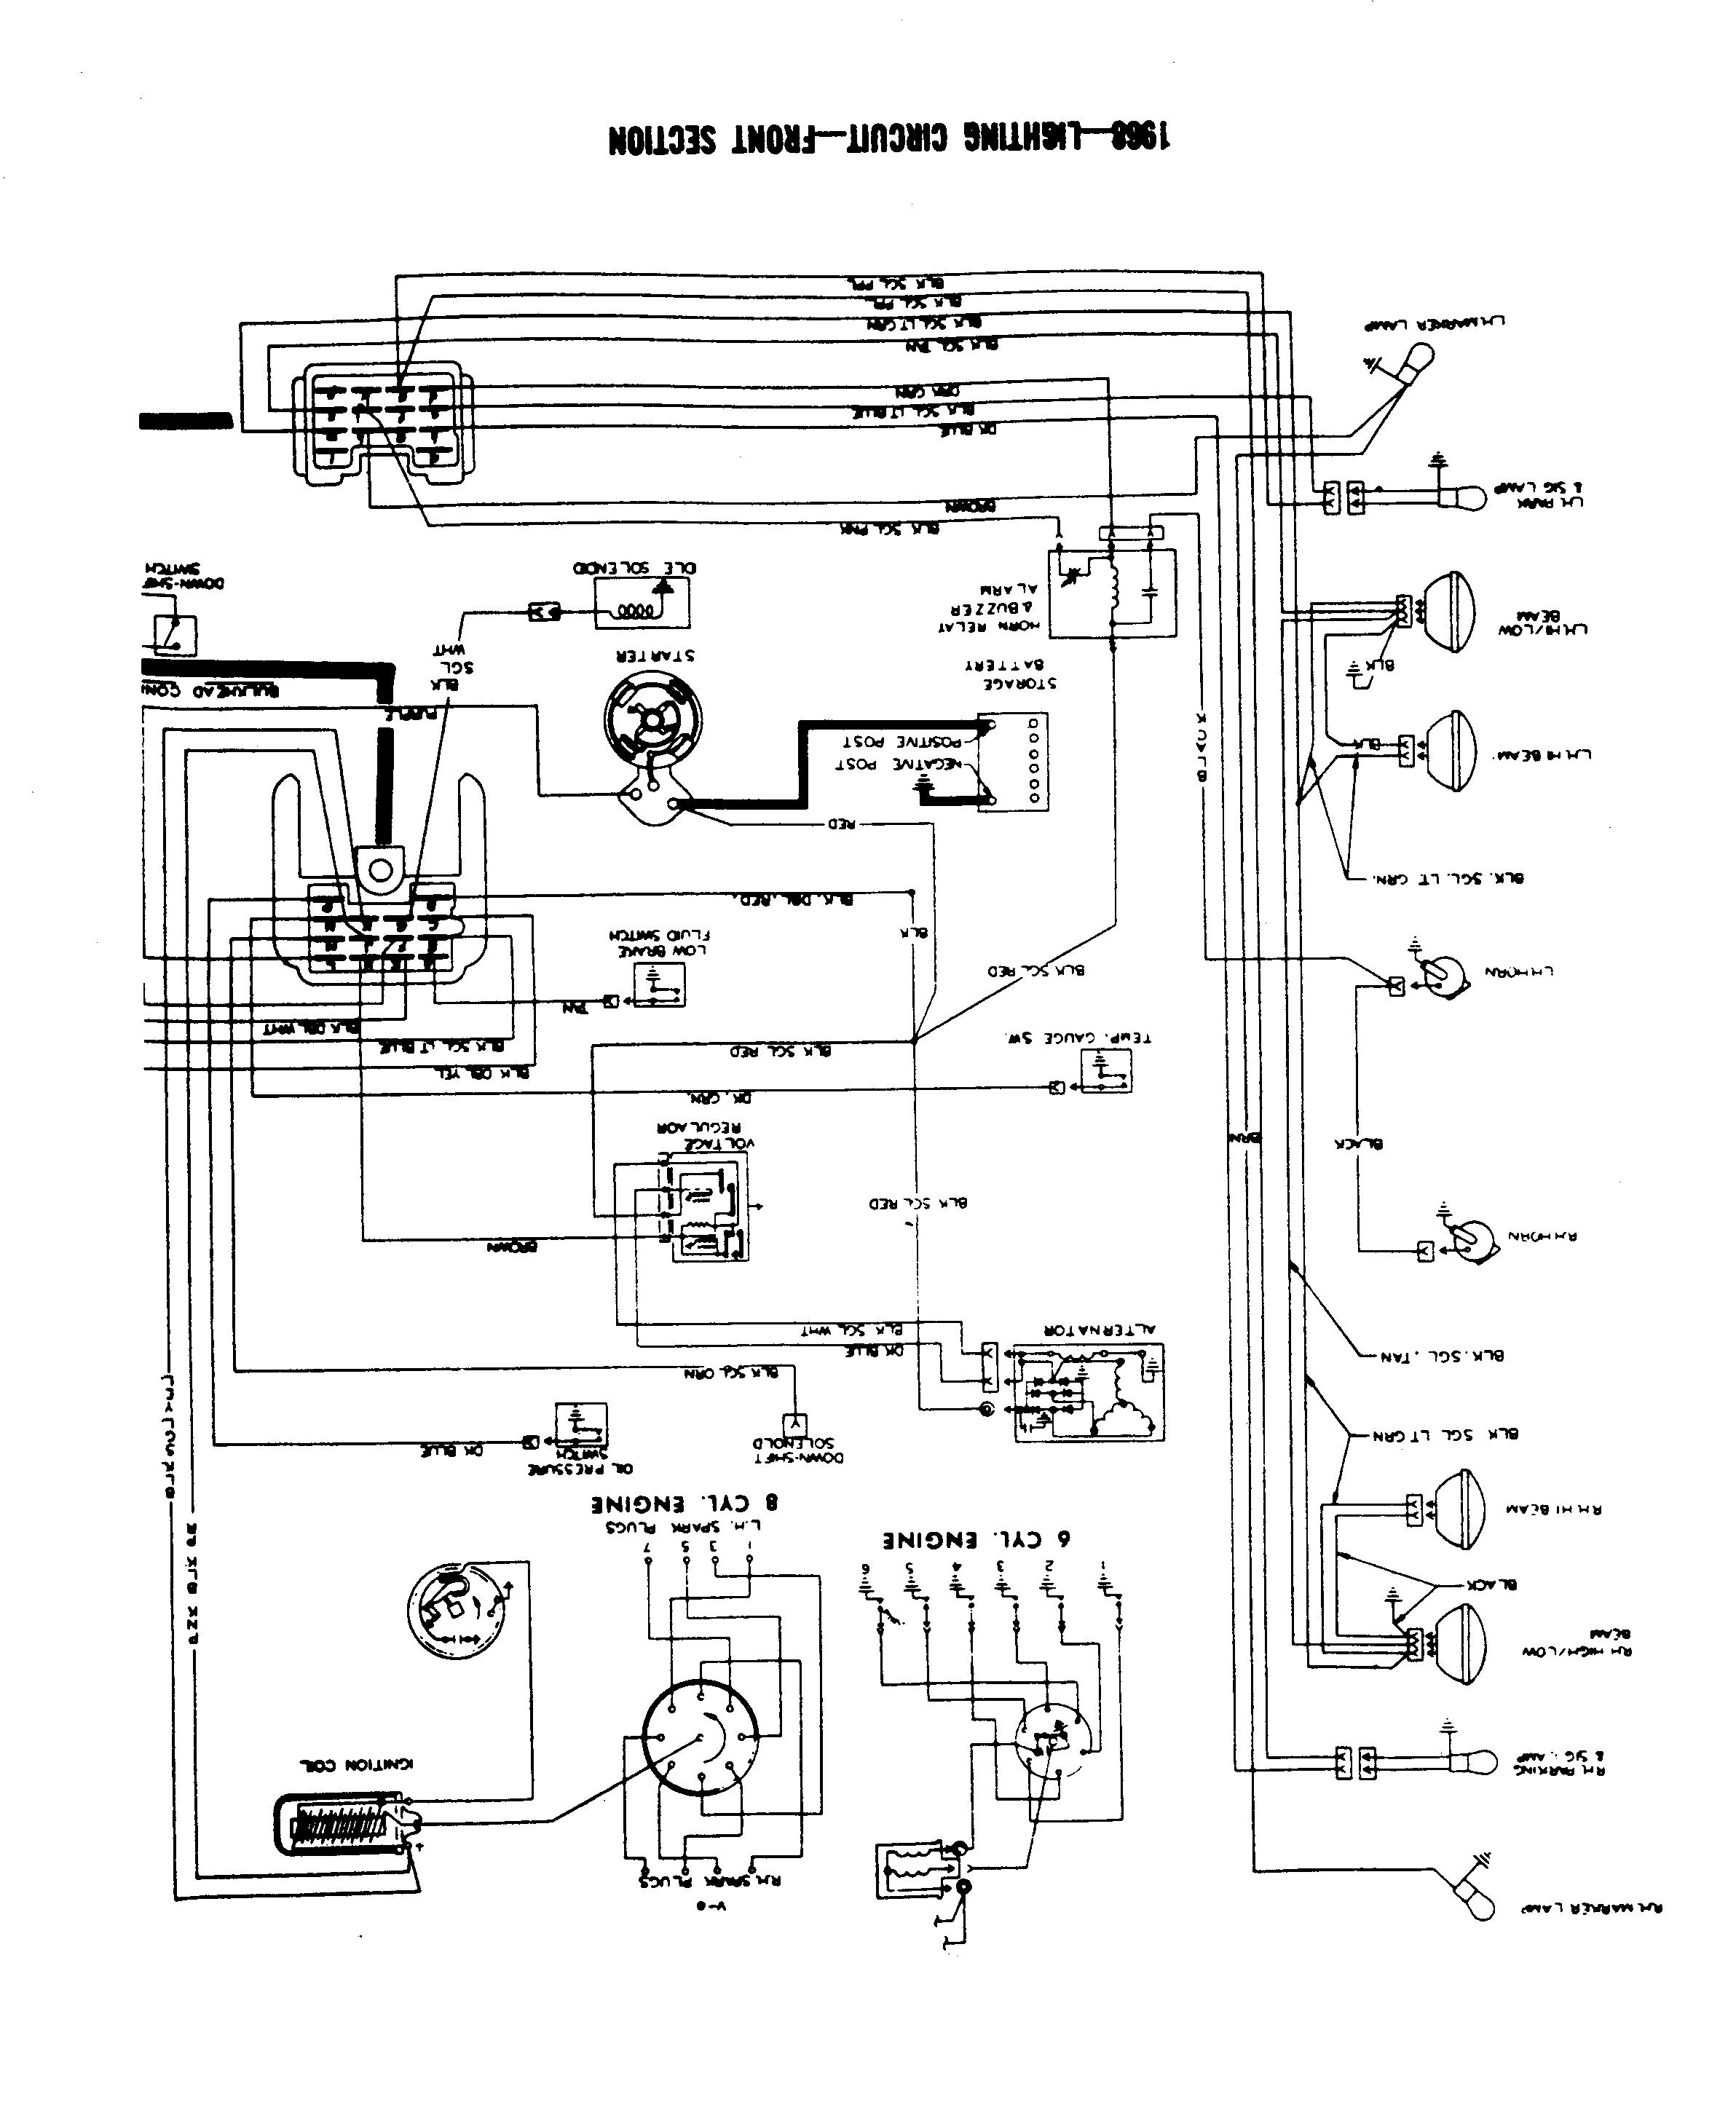 1968 Camaro Dash Wiring Diagram Image 1969 Schematics And Diagrams Mustang Under